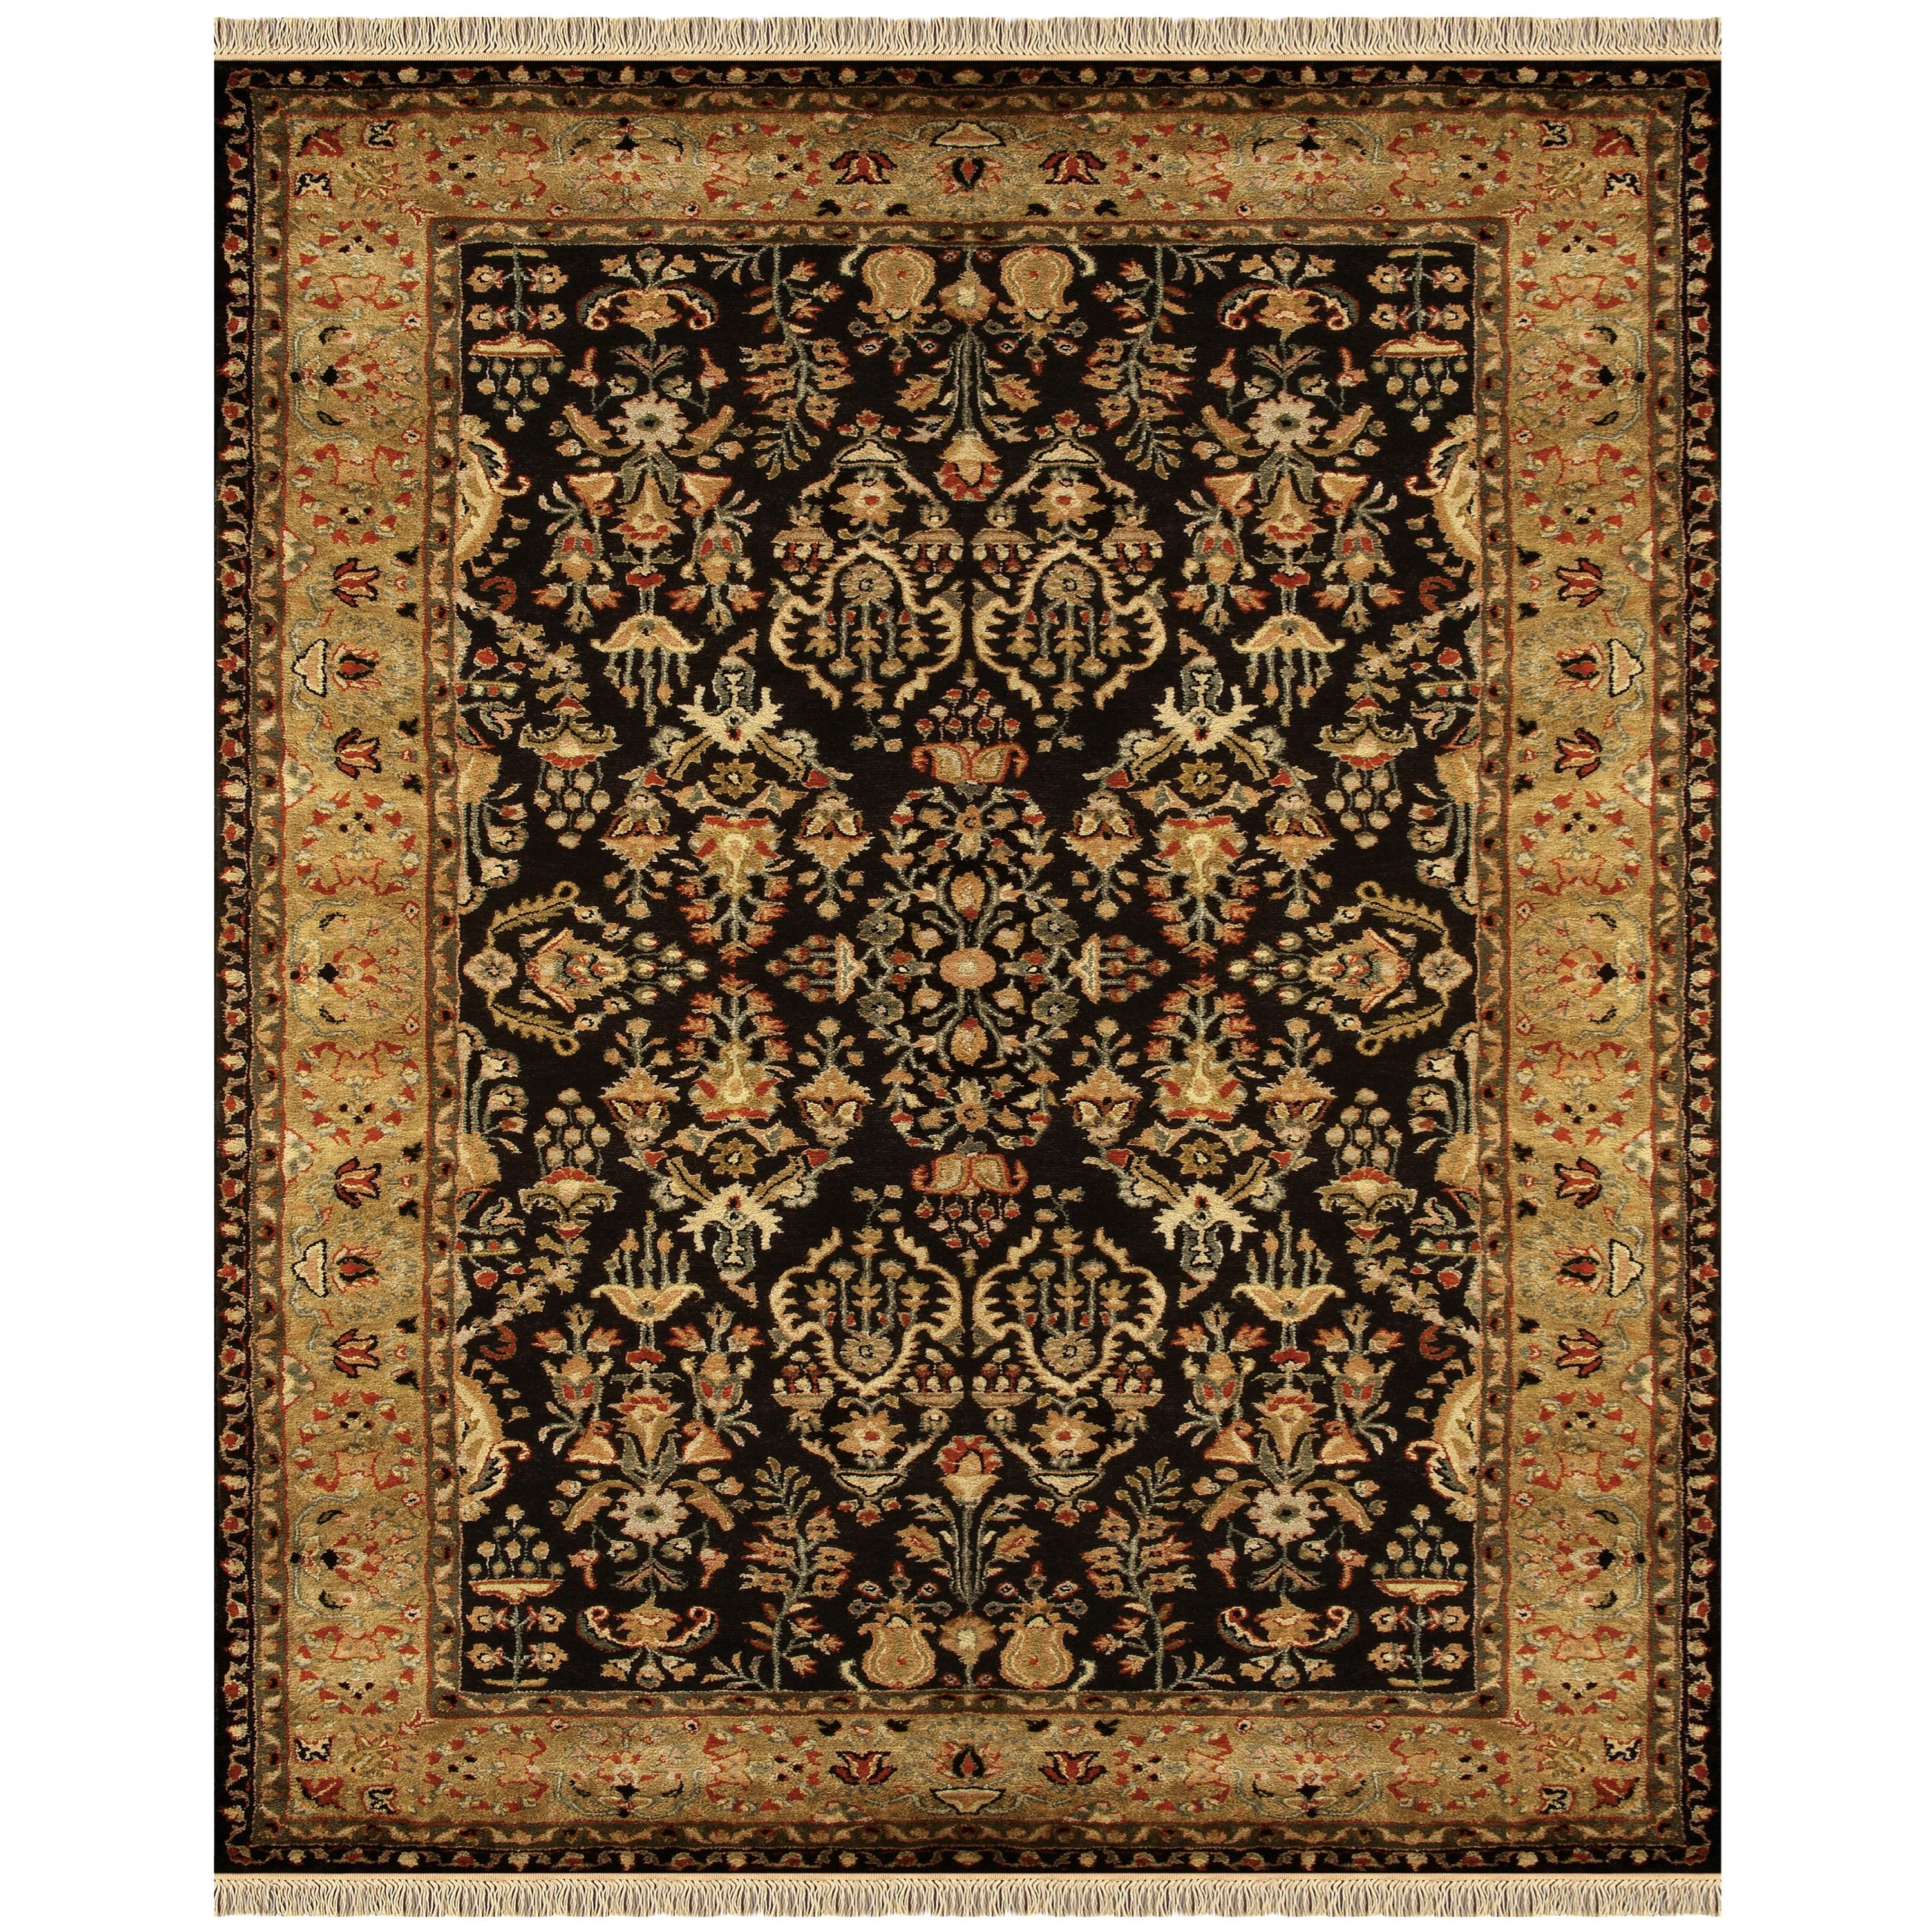 """Amore Black/Gold 9'-6"""" x 13'-6"""" Area Rug by Feizy Rugs at Sprintz Furniture"""